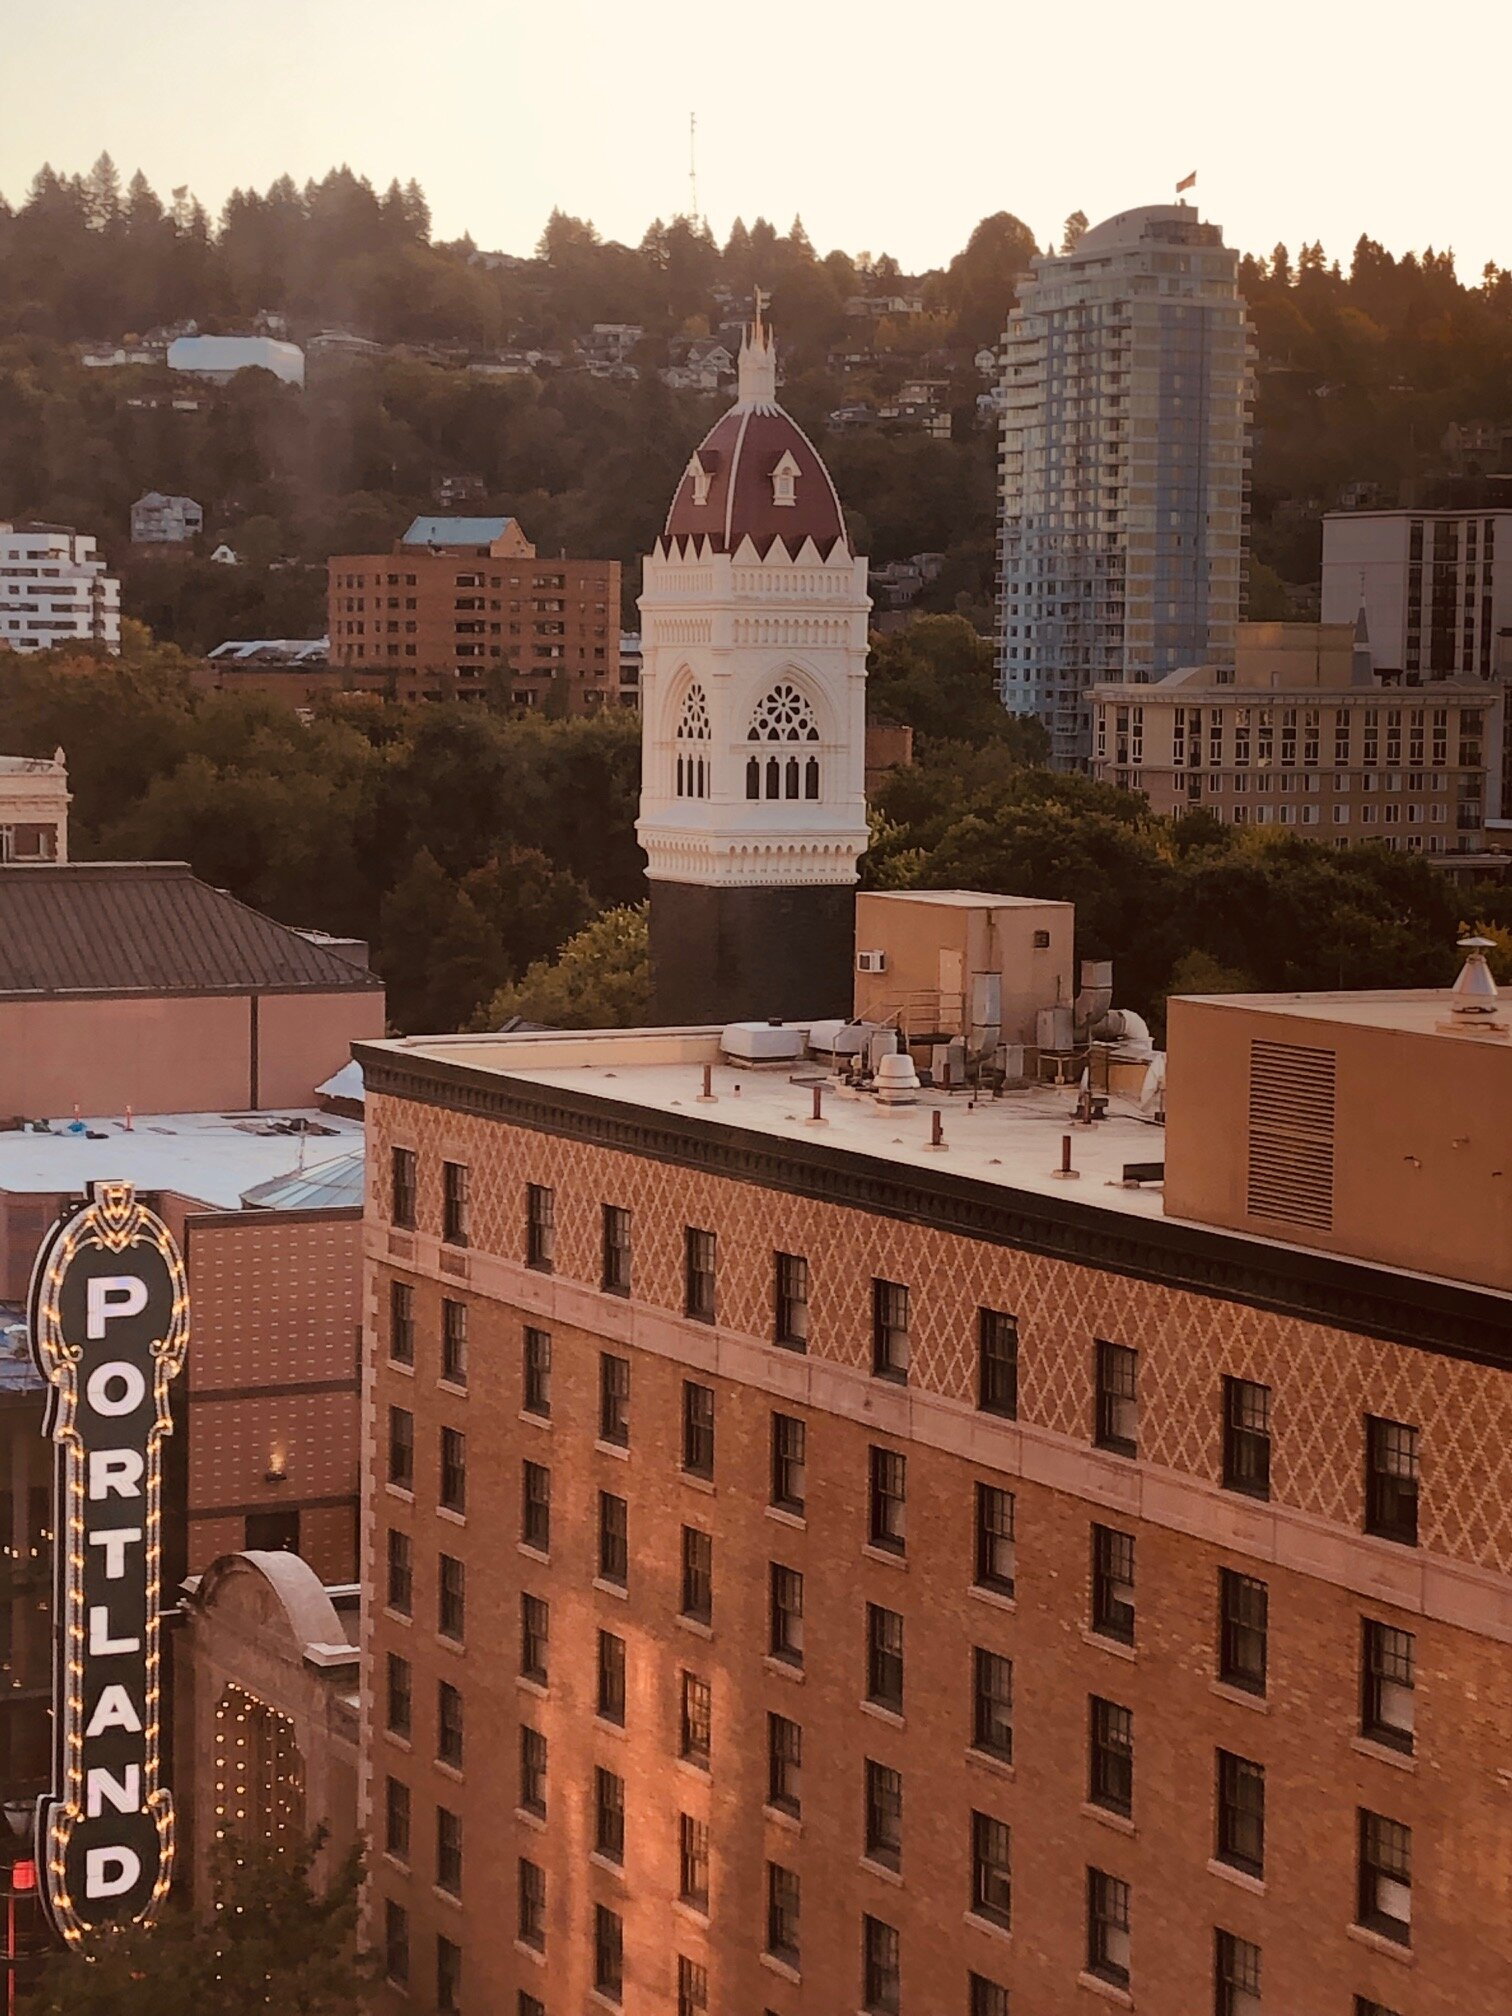 This year's conference took place in beautiful Portland, Oregon.